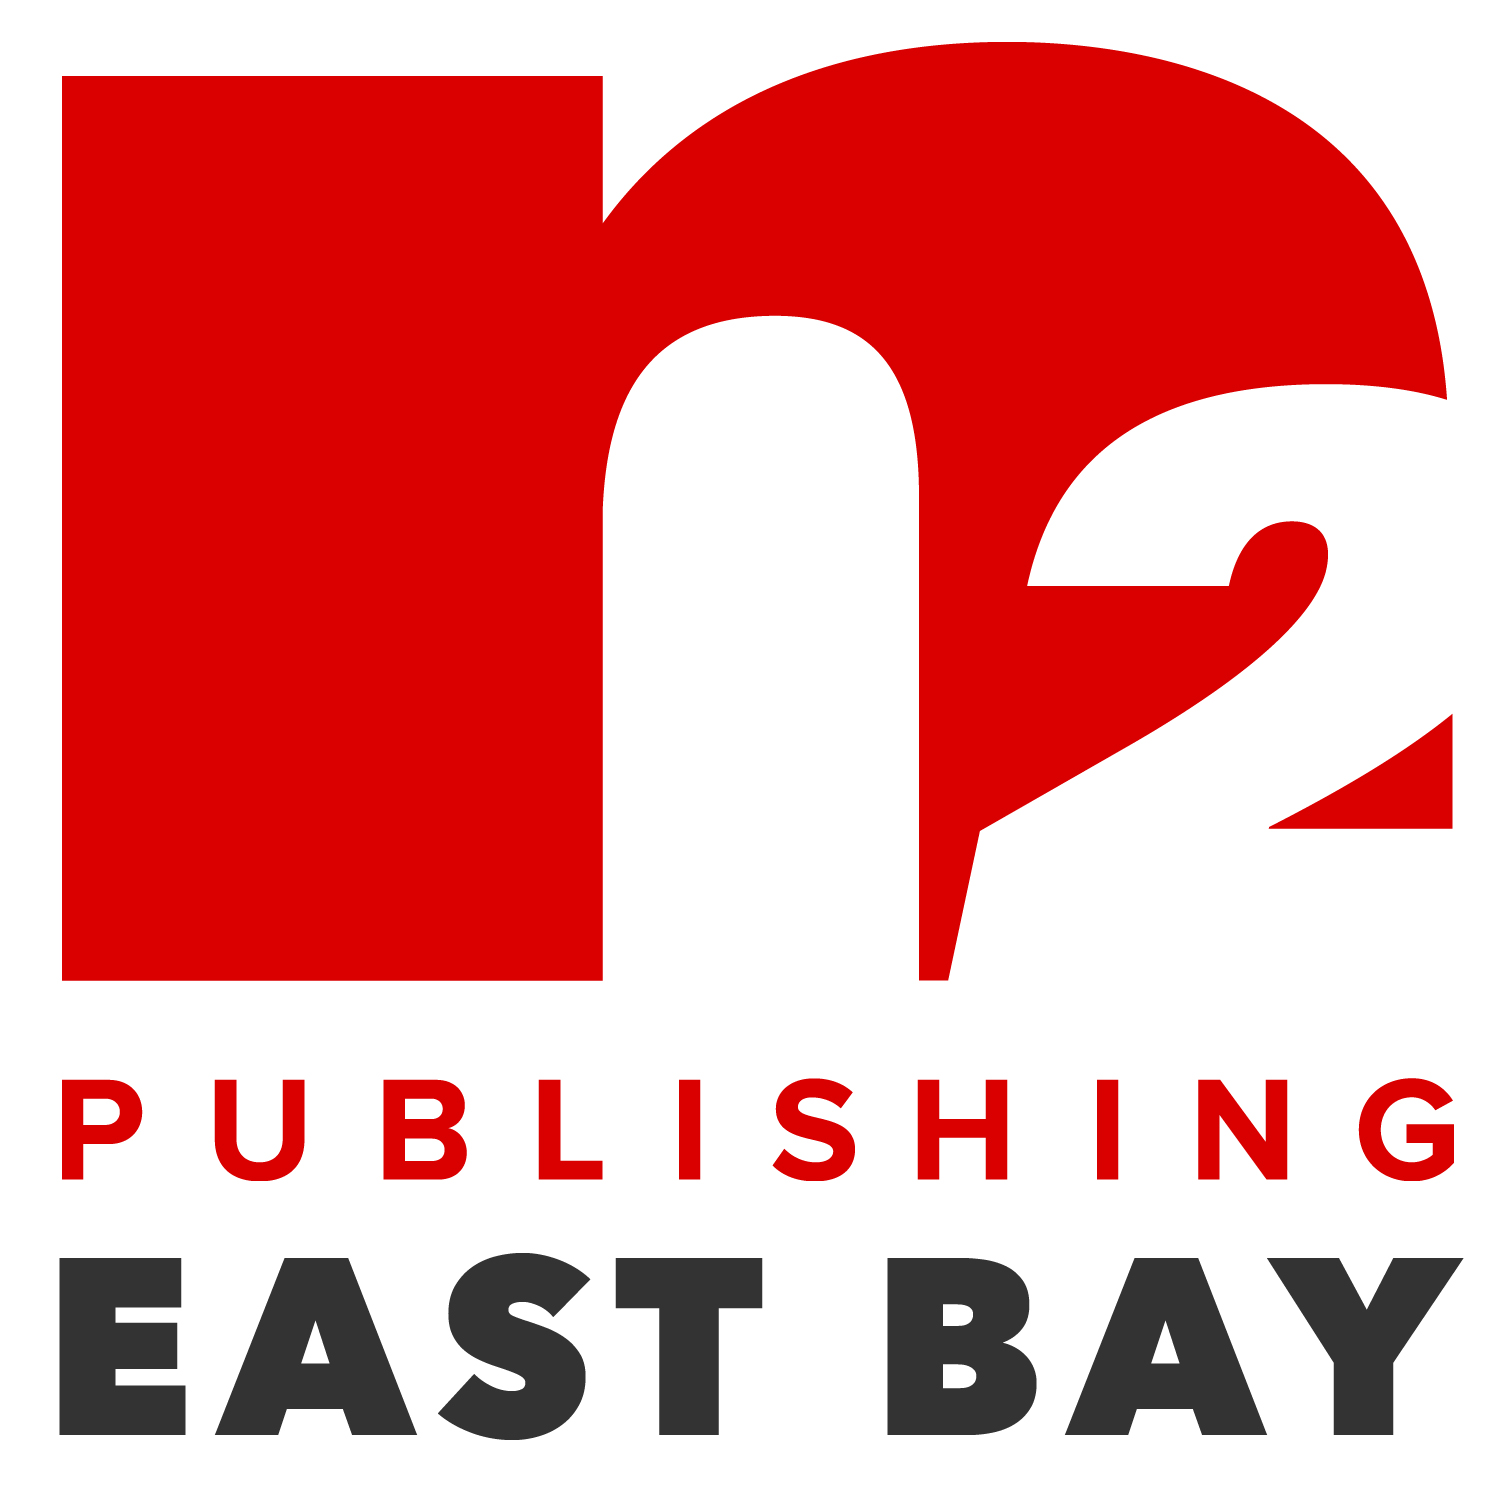 N2EastBaylogo.jpg